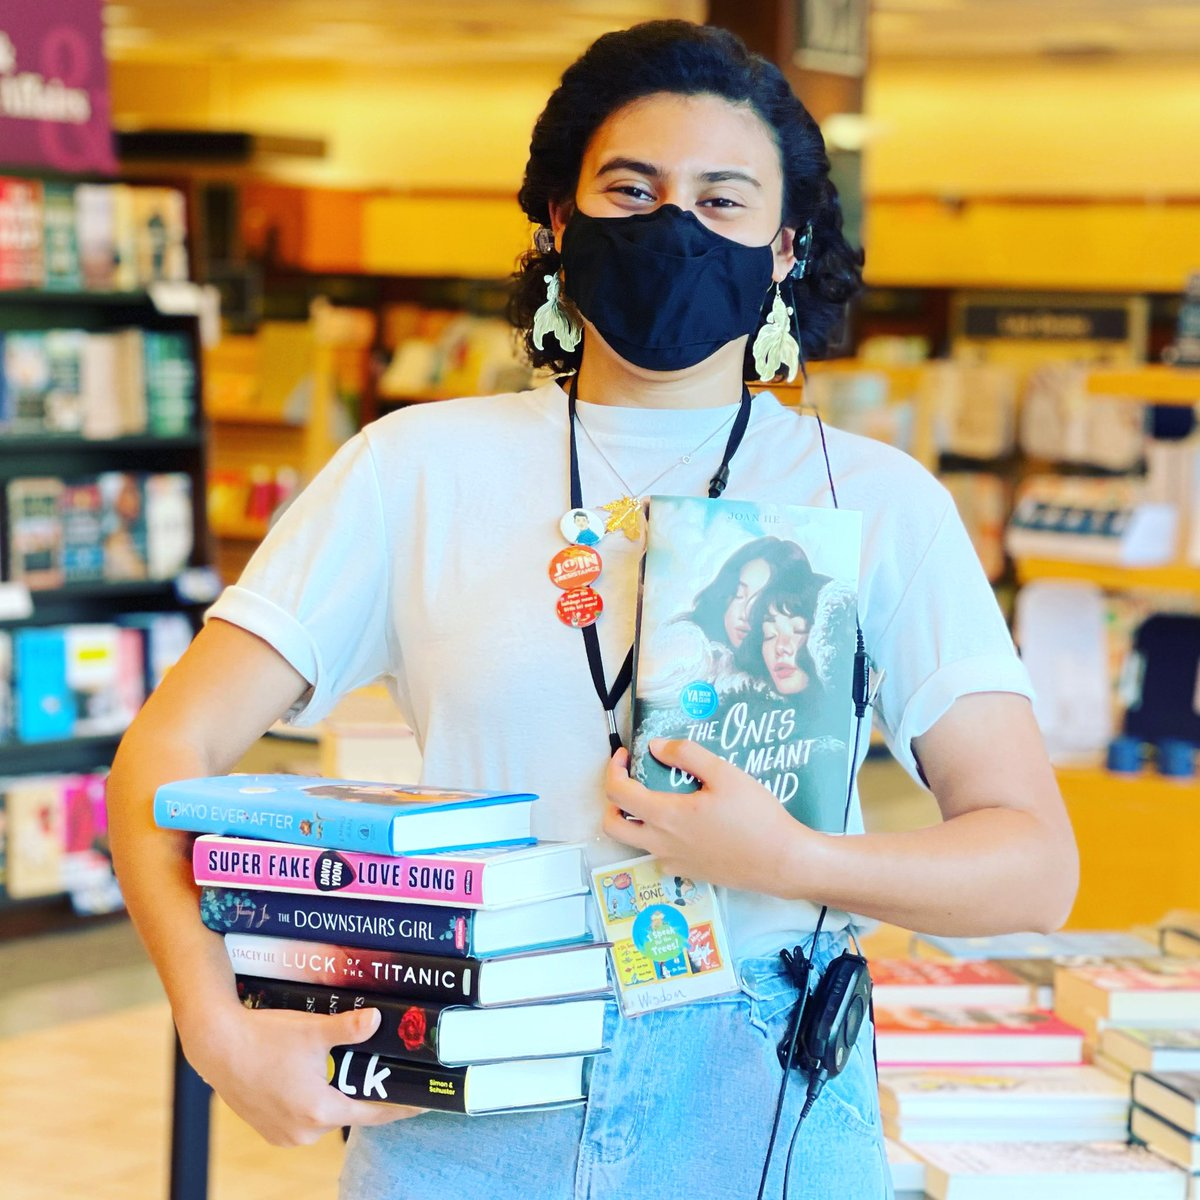 Come in to see our YA New Releases inspired by some great Asian Authors!  To honor #aaipheritagemonth   @emikojeanbooks @davidoftheyoon @staceyleeauthor @thechloegong @choitotheworld @joanhewrites  #ya #asian #asianauthors #newrelease  #yabooks https://t.co/DJH7WxPdua